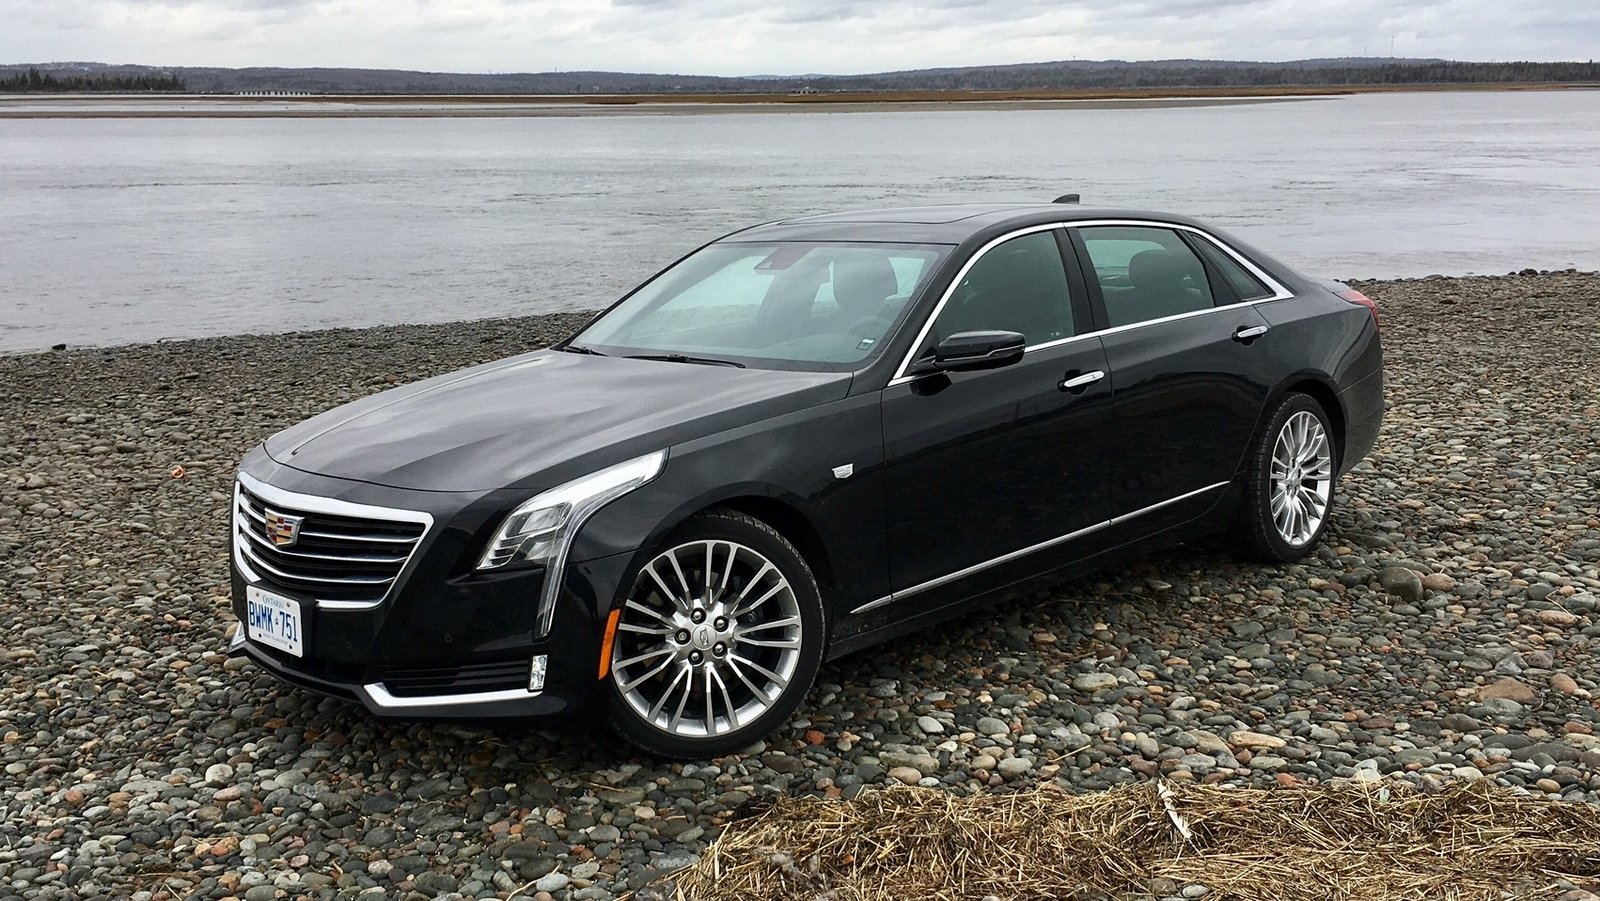 2017 cadillac ct6 picture 708003 car review top speed. Black Bedroom Furniture Sets. Home Design Ideas